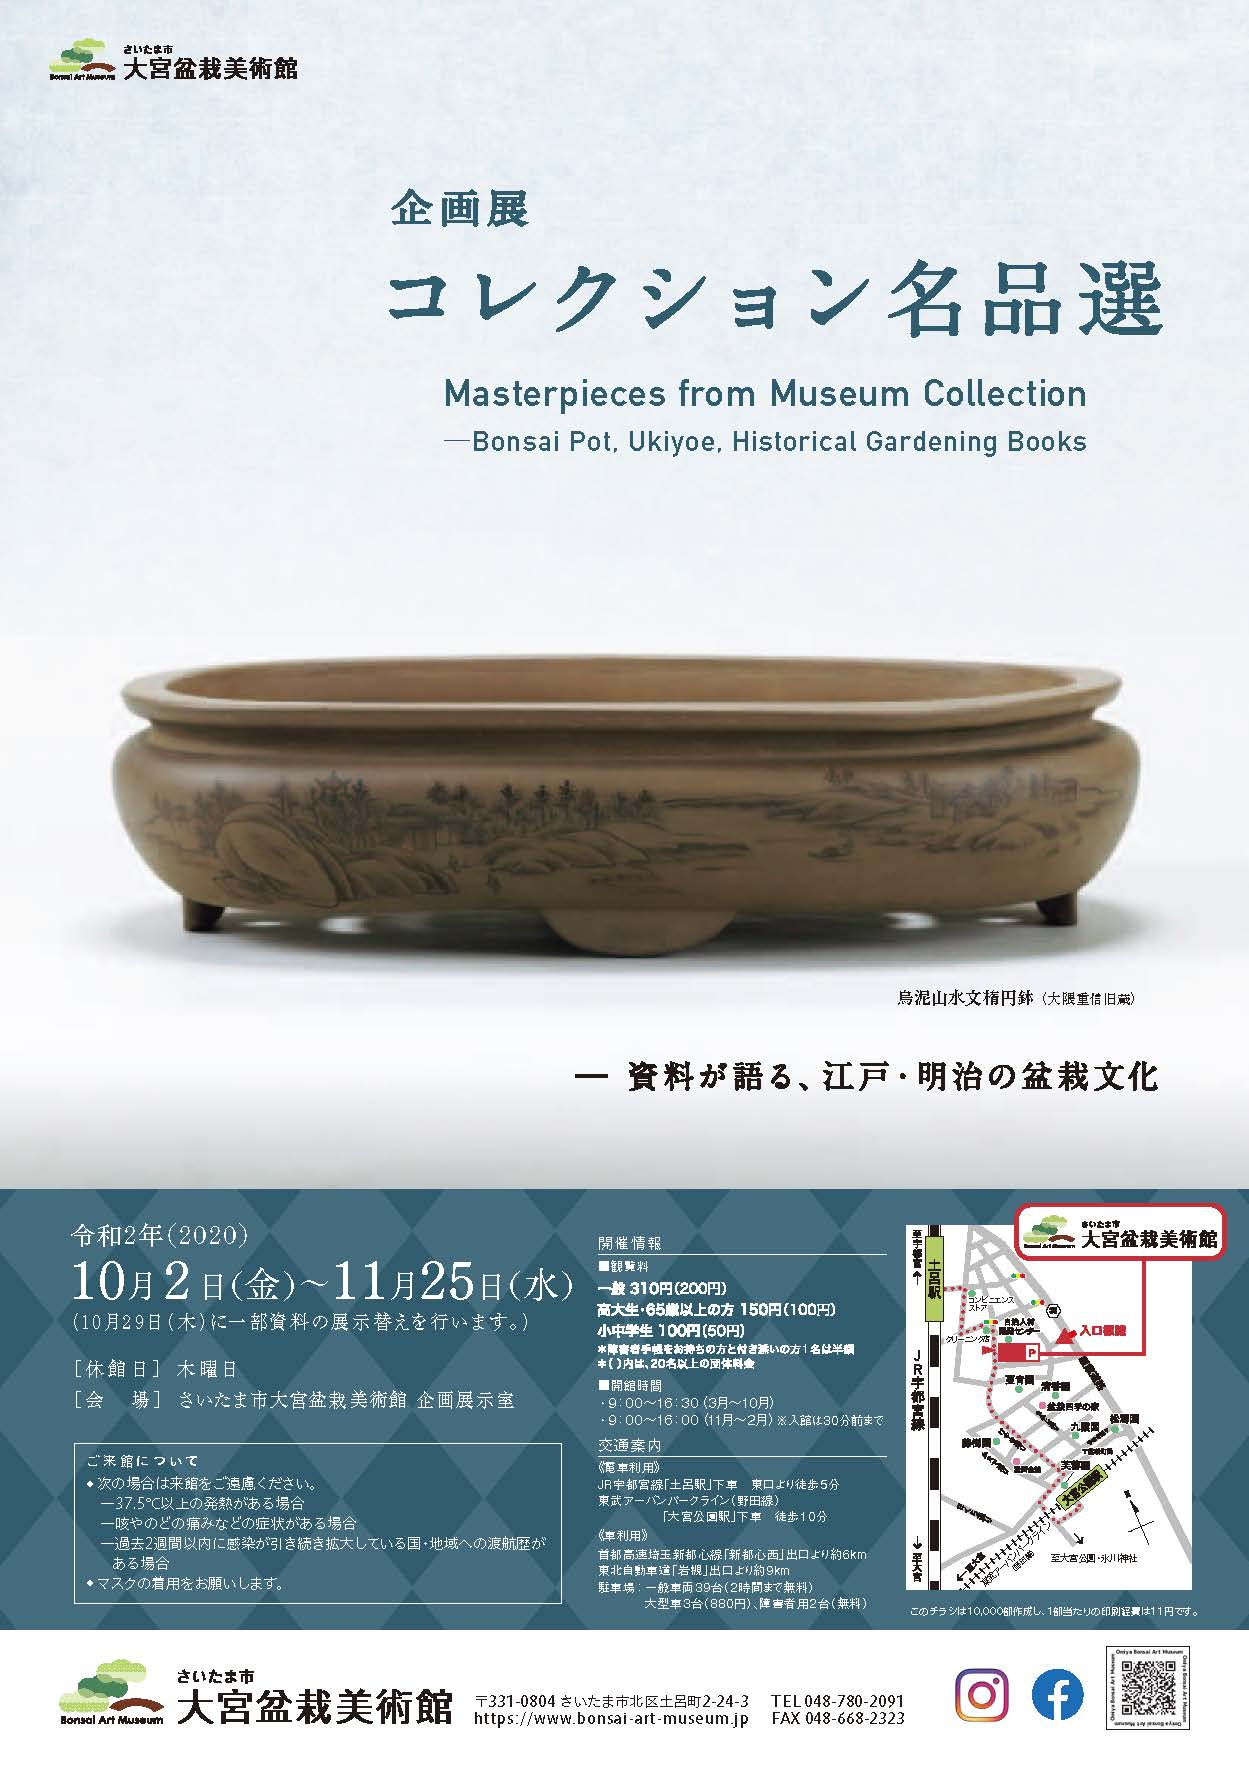 Masterpieces from Museum Collection: Bonsai Pot, Ukiyoe, Historical Gardening Books